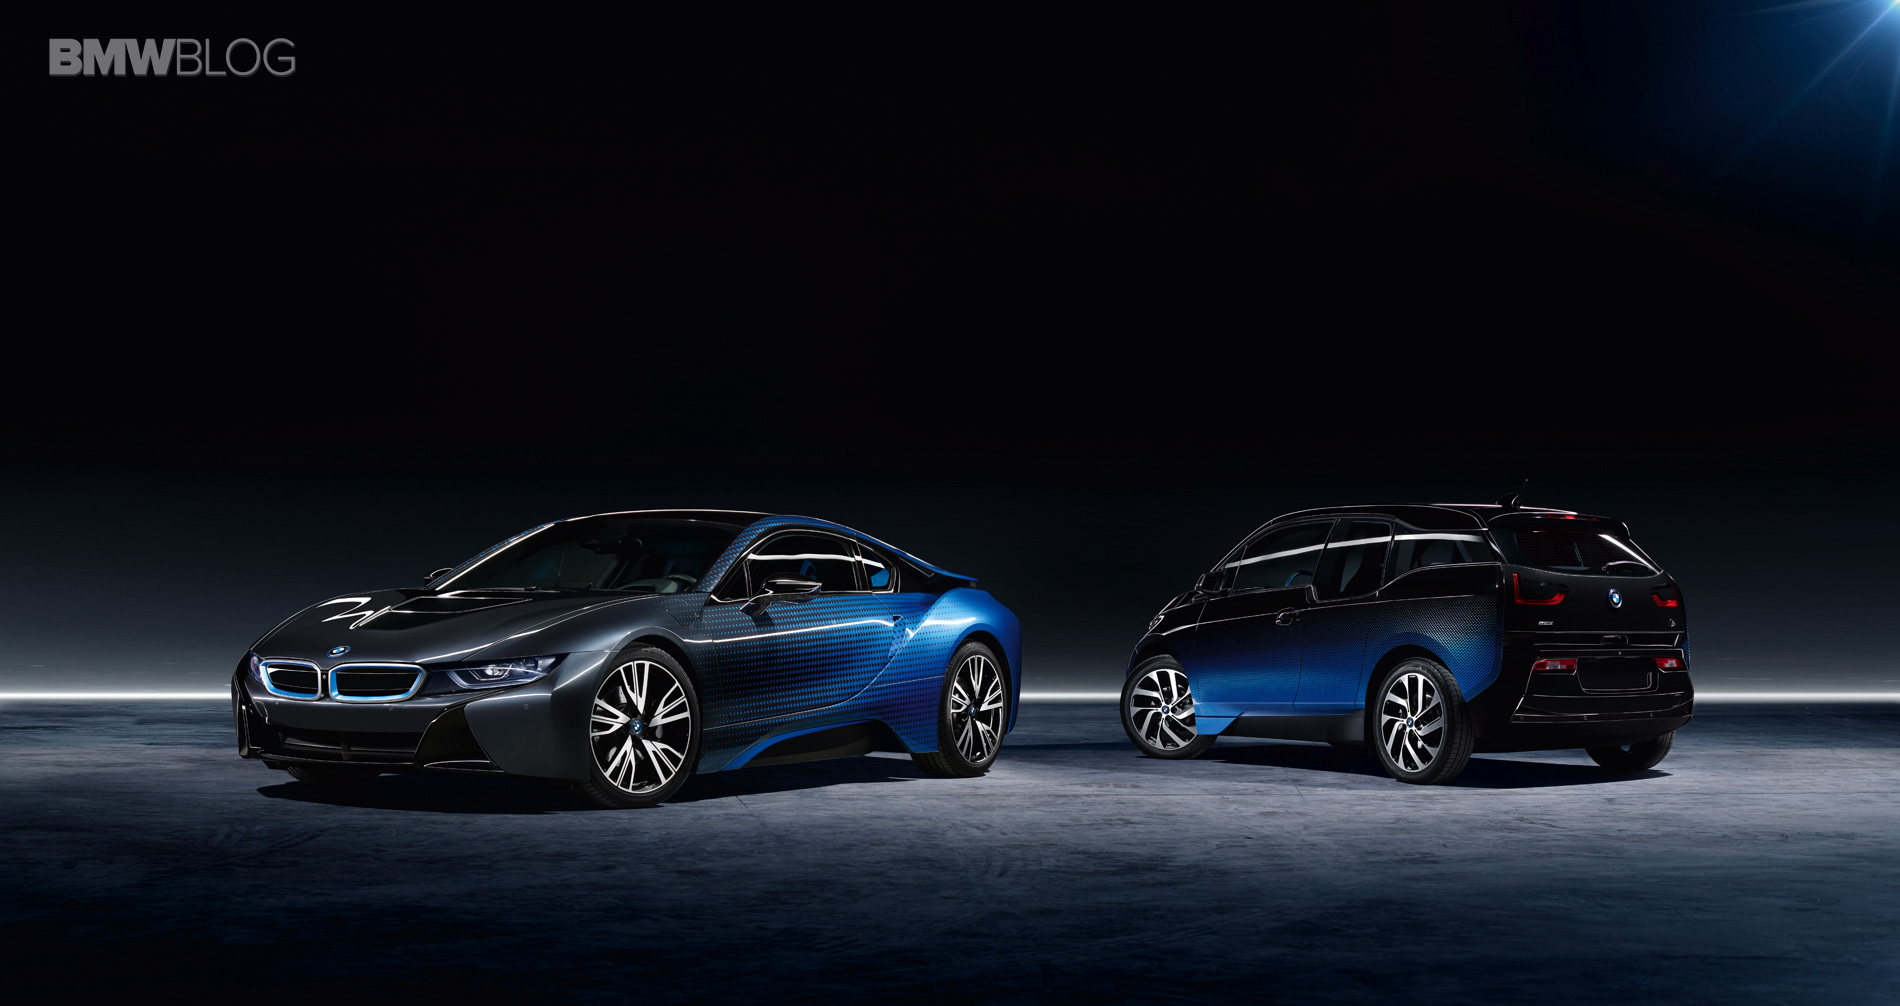 Bmw I3 And The Bmw I8 Garage Italia Crossfade Introduced